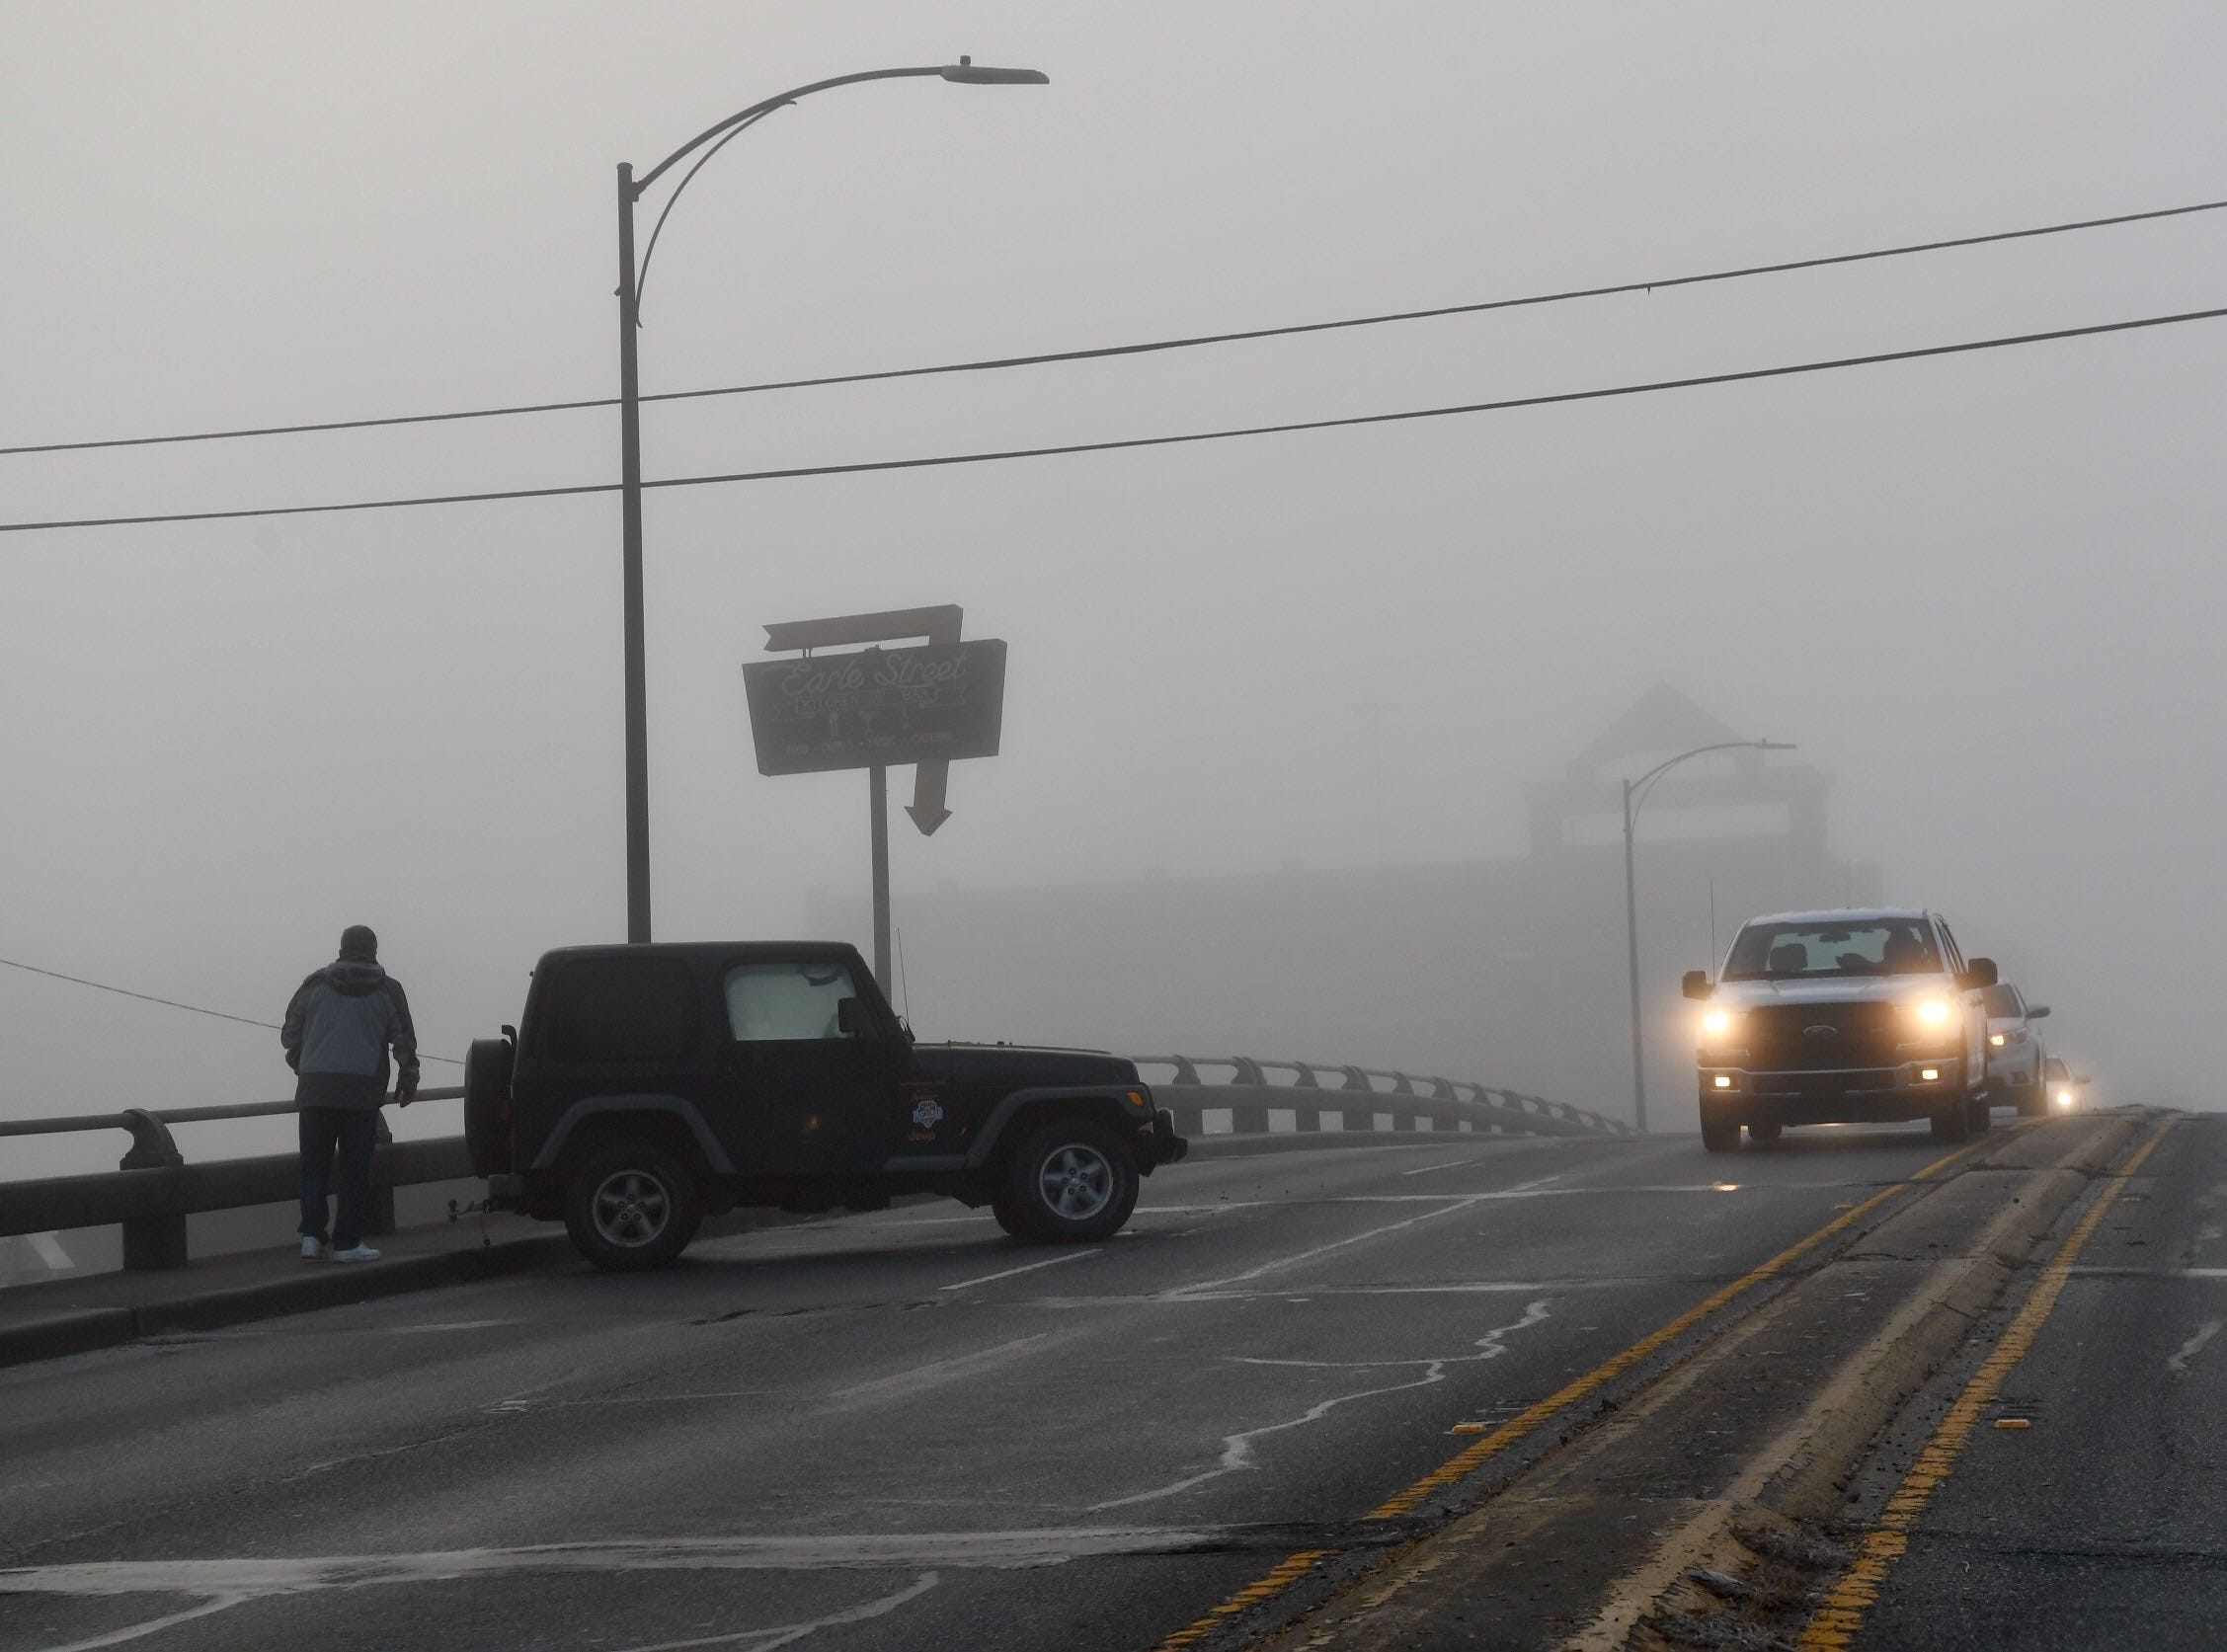 The bridges in Anderson County turned icy even as fog enveloped the area on Tuesday, Dec. 11, 2018. One Jeep spun out and blocked a lane on Murray Avenue bridge in downtown, with police assisting afterwards.